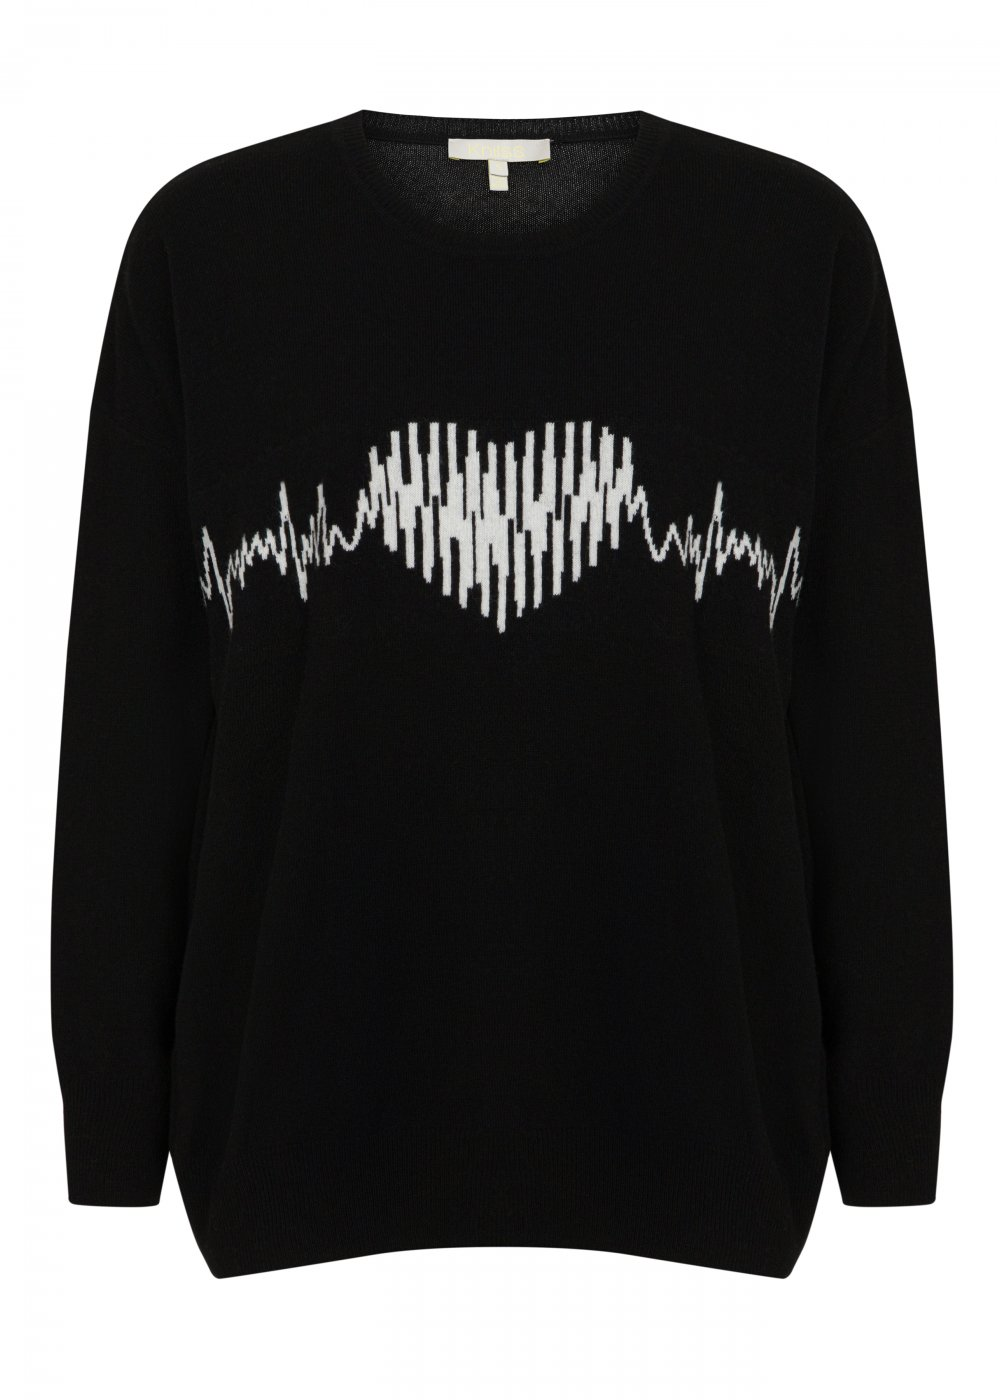 Heart Patterned Wool Cashmere Blend Black Sweater